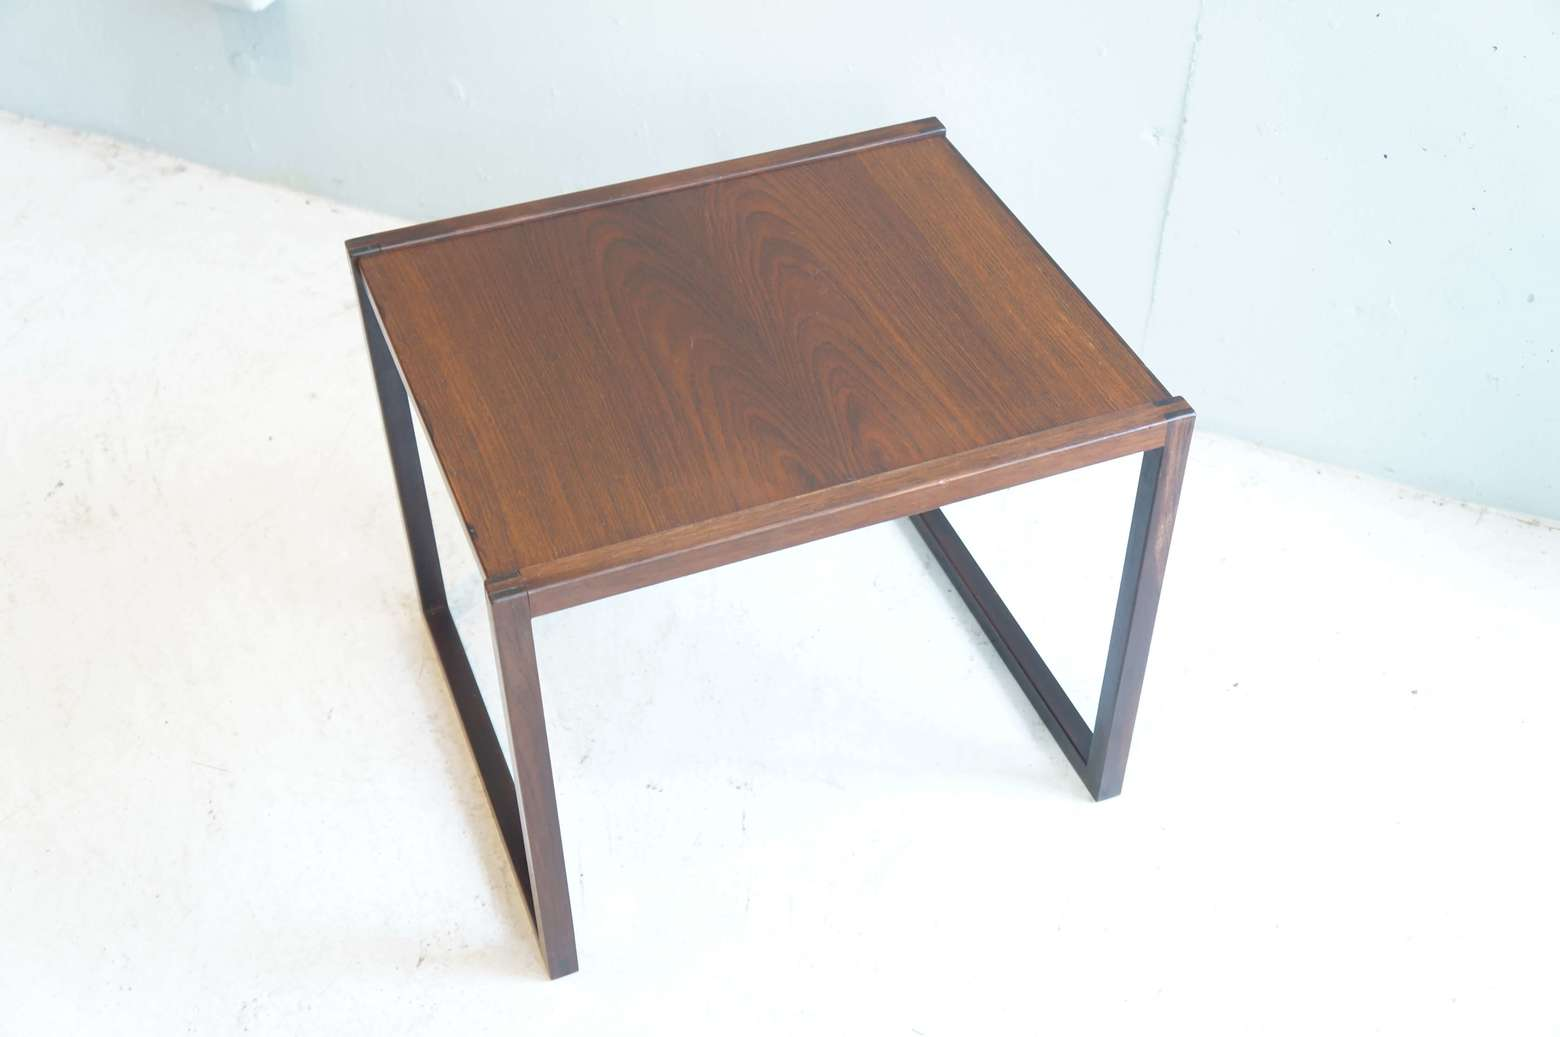 Vildbjerg Møbelfabrik Design by Kai Kristiansen Rose Wood Nesting Table One Piece / カイ クリスチャンセン デザイン ネストテーブル